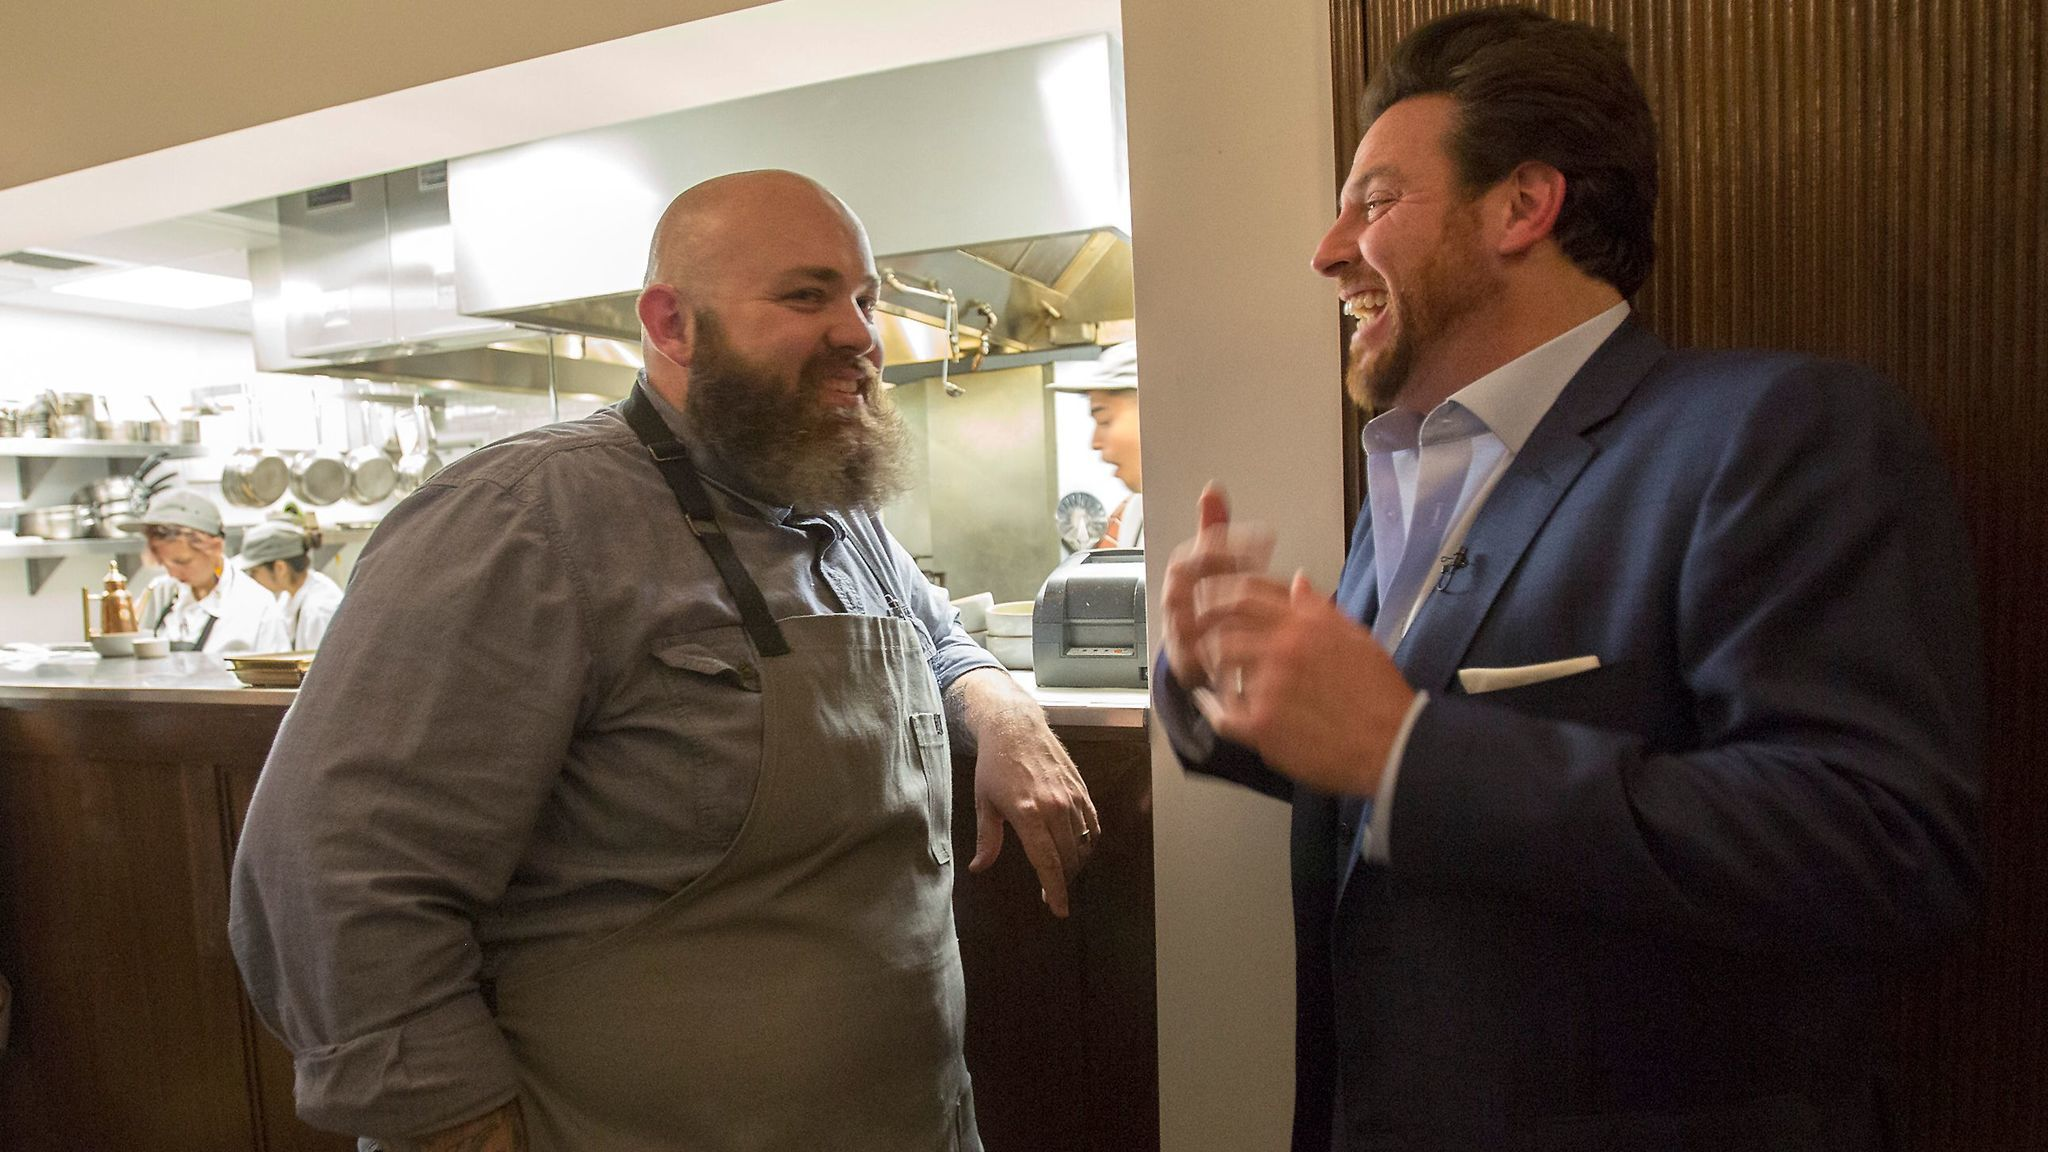 Chef and pasta maker Evan Funke (left) of Felix Trattoria chats with chef Scott Conant following dinner at the Venice restaurant.